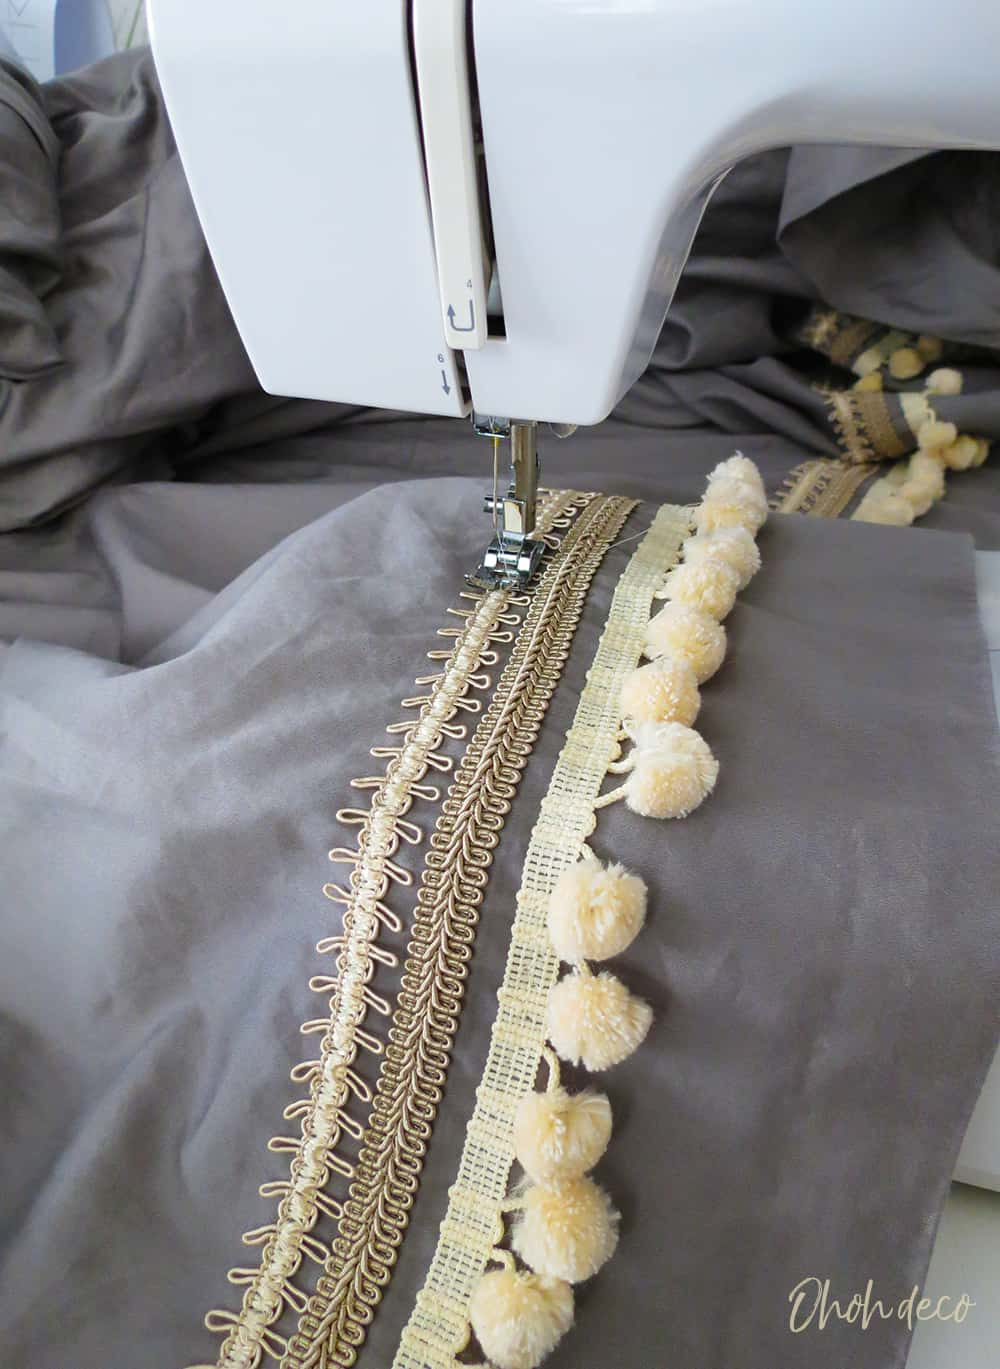 sew trims on bed sheets